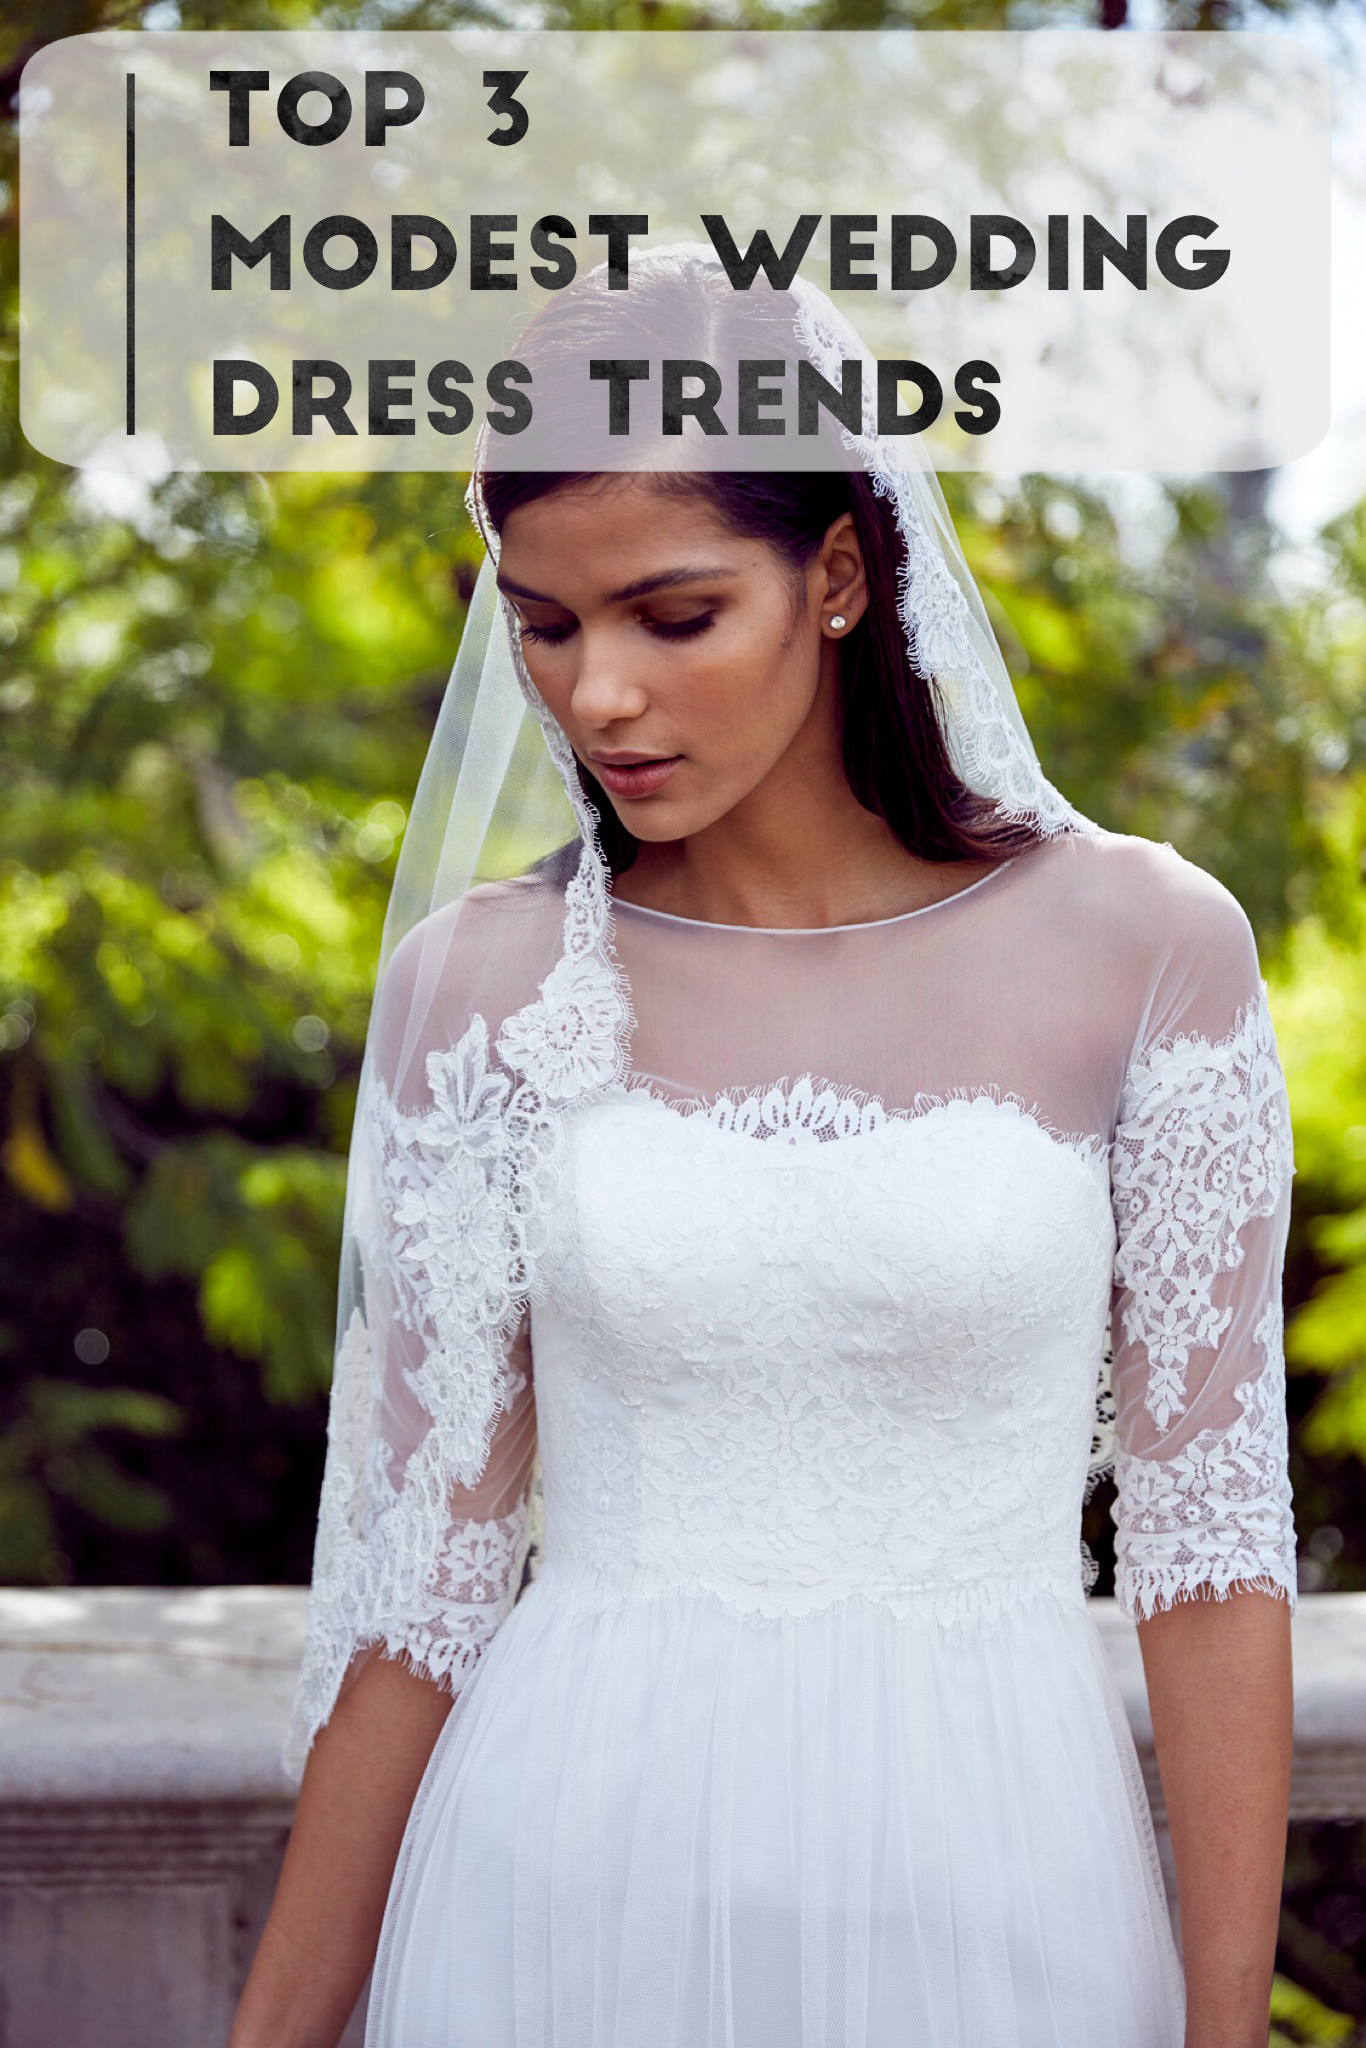 Top 3 Modest Wedding Dress Trends ft. David's Bridal